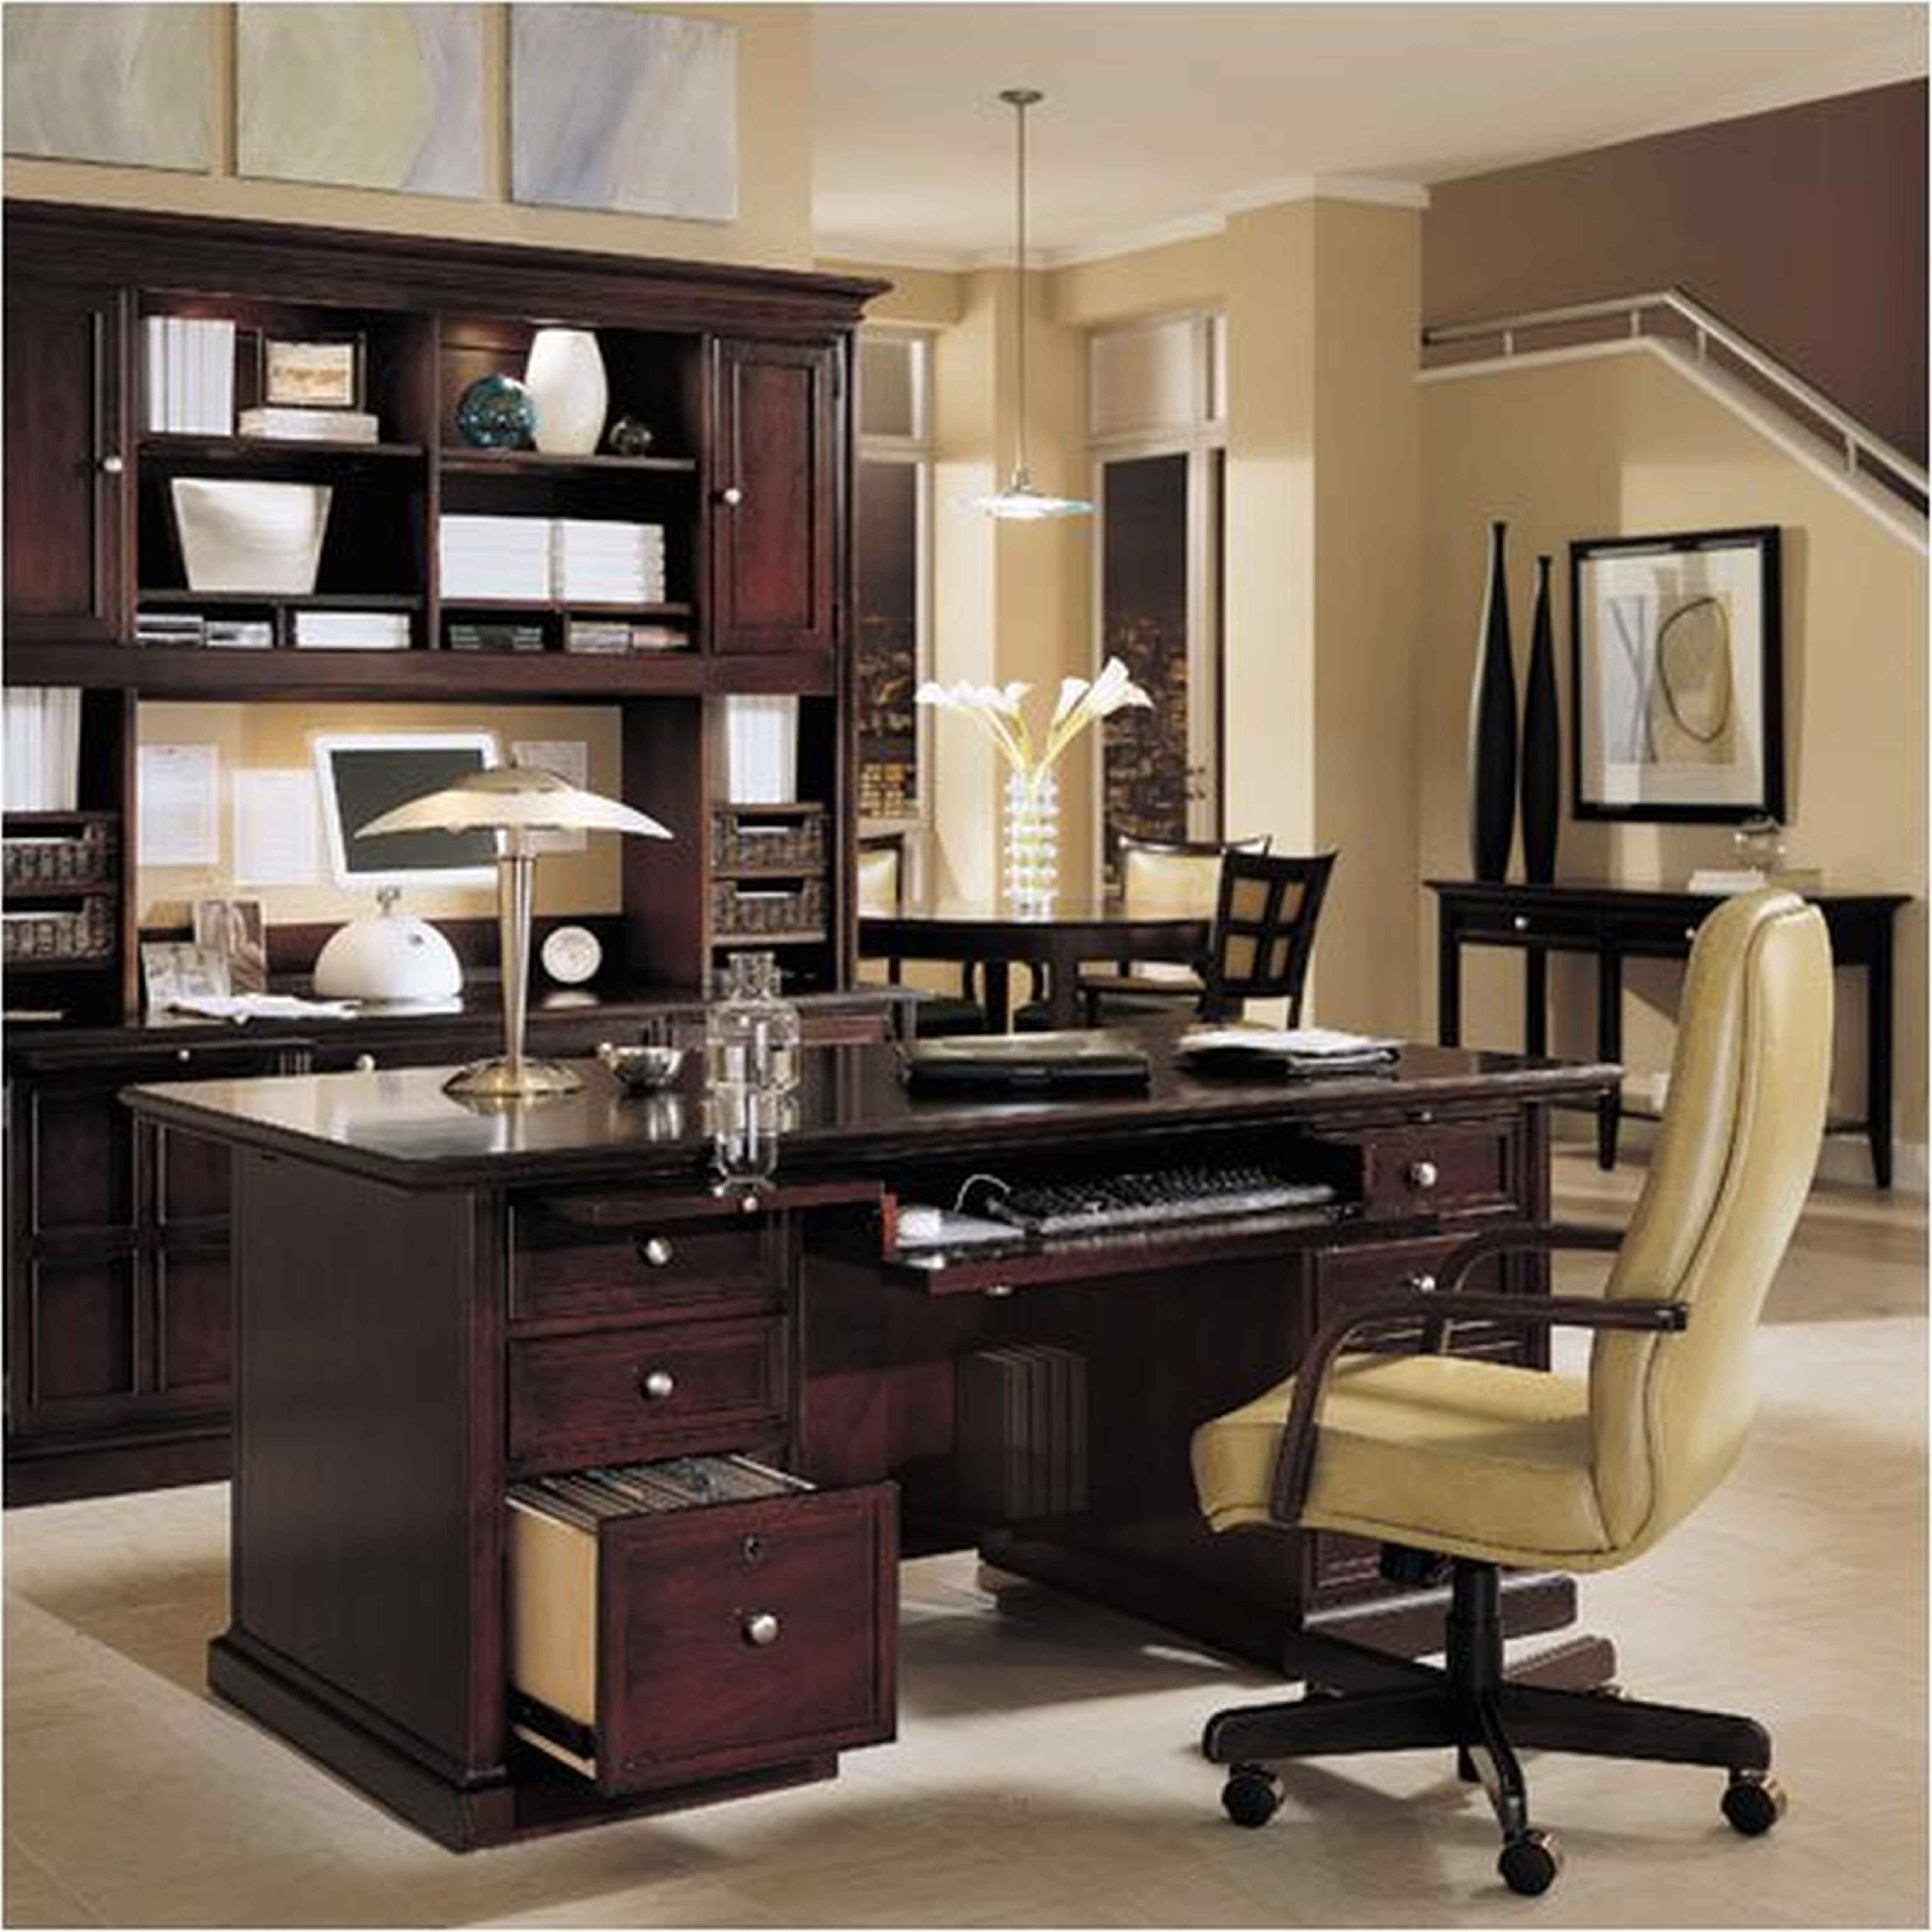 23 Fresh Corporate Office Design Executive Decor Desks Ideas is part of Office decor For Men - Corporate Office Design Executive Decor Desks  Fresh Corporate Office Design Executive Decor Desks, Fice Decor for the Modern Man